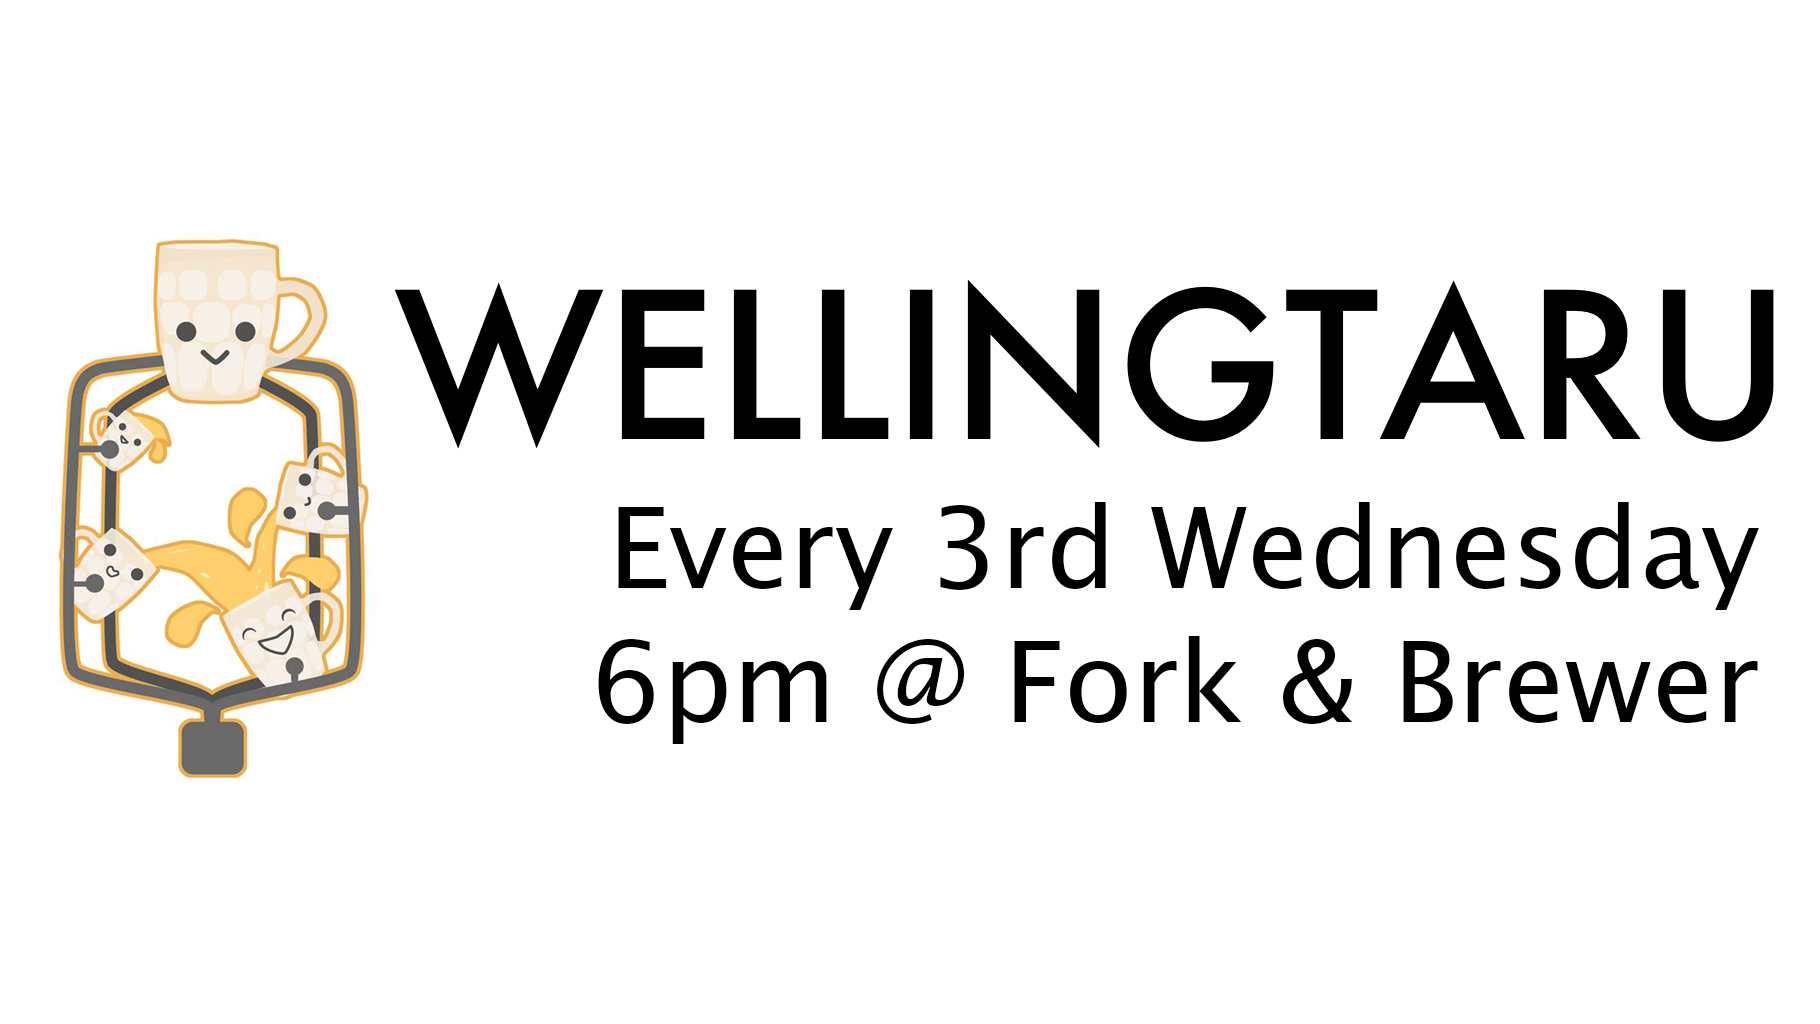 Wellingtaru - a social gathering for game creators